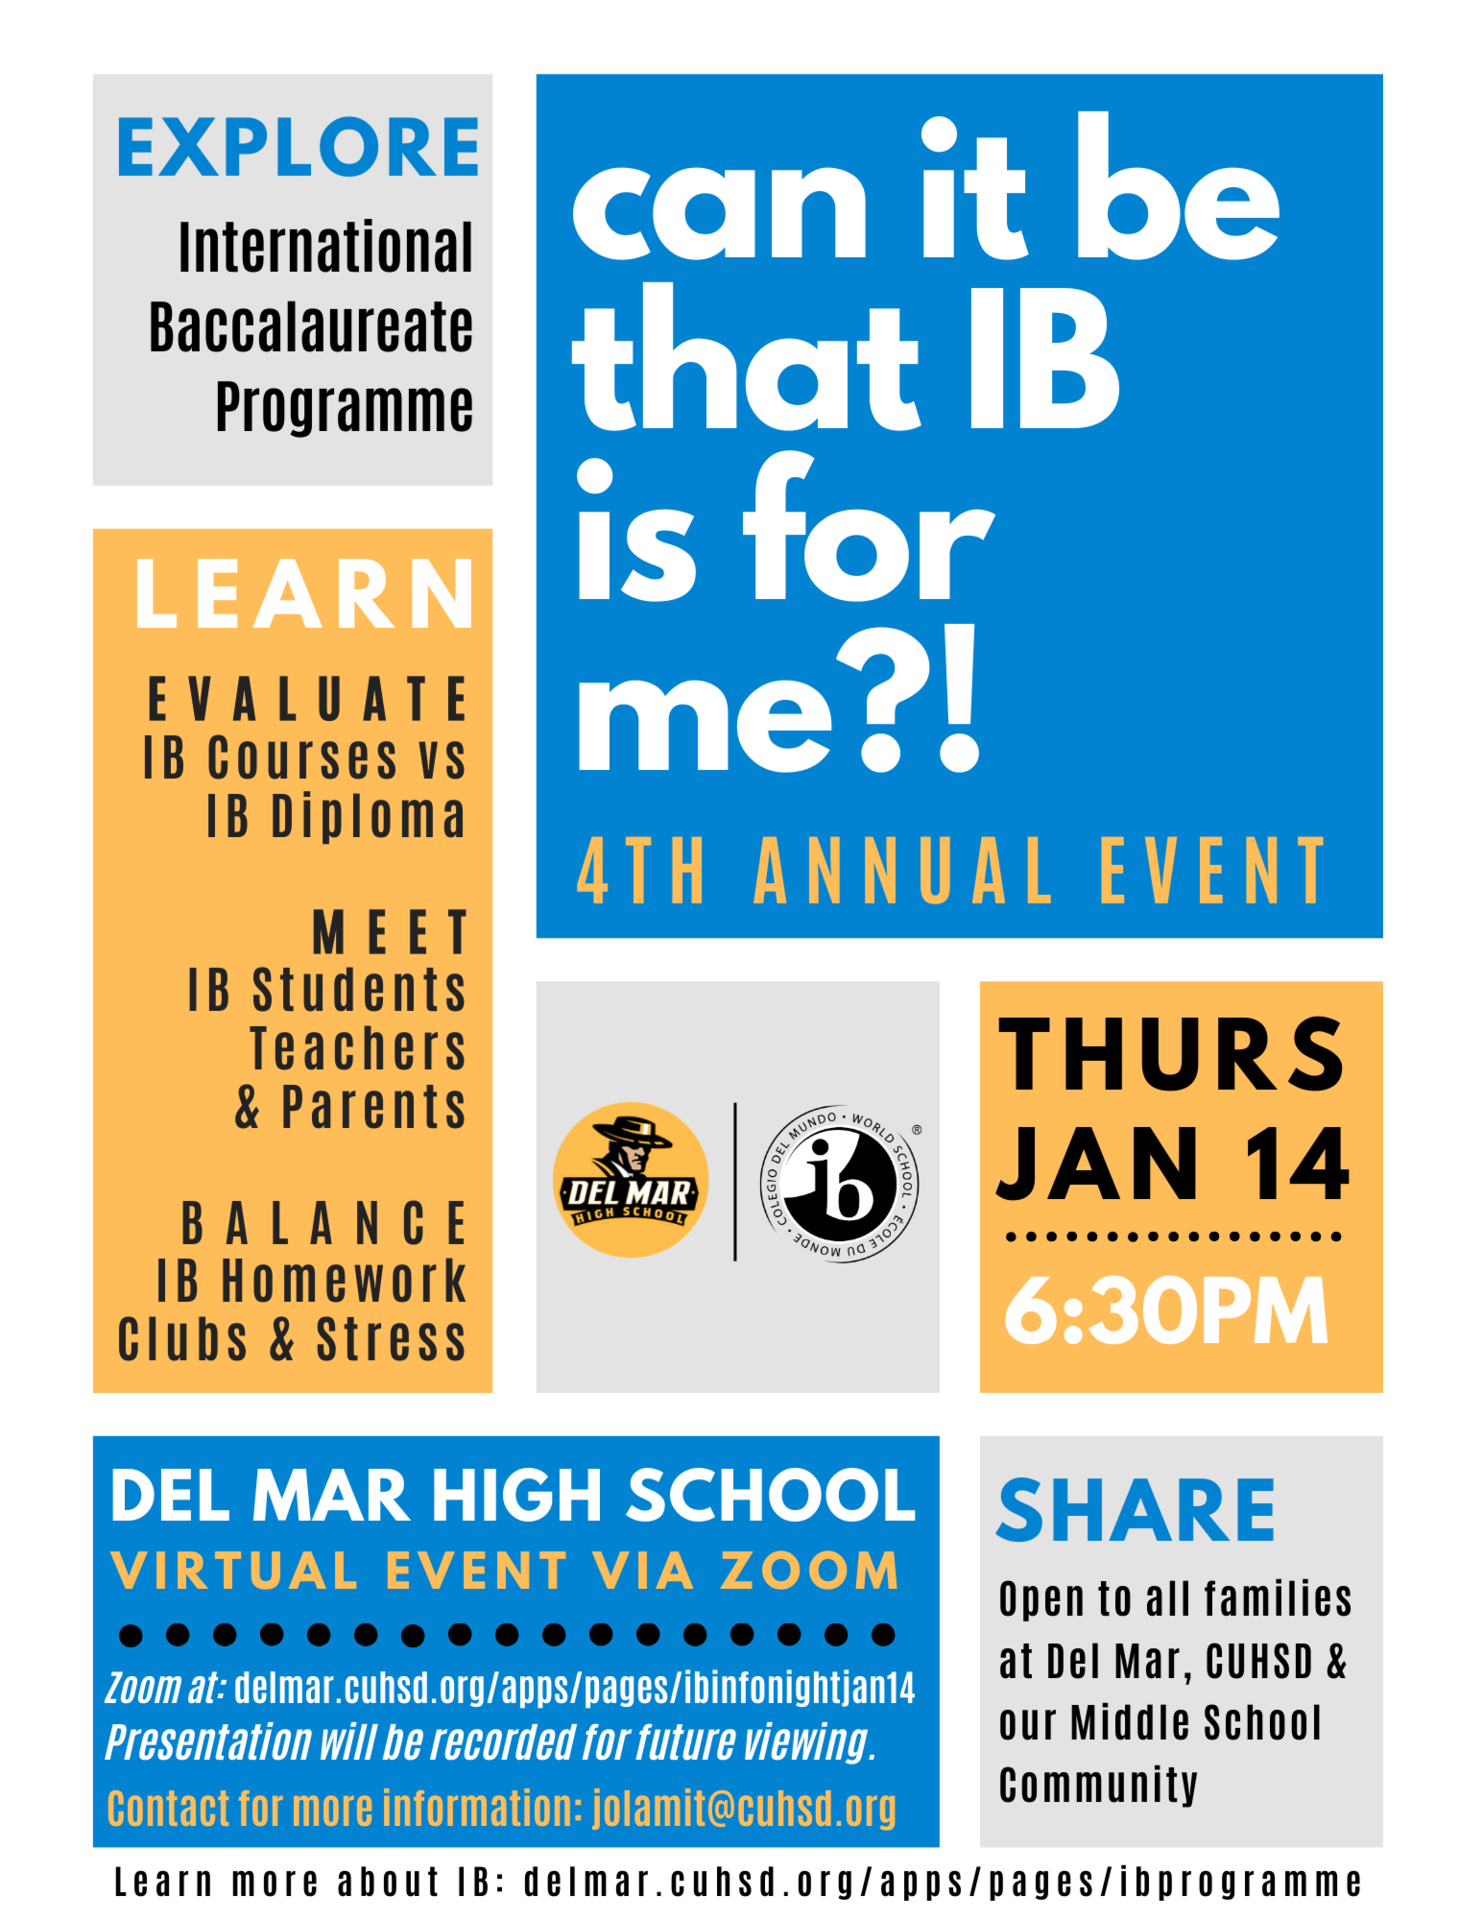 ib info night on jan 14, 2021